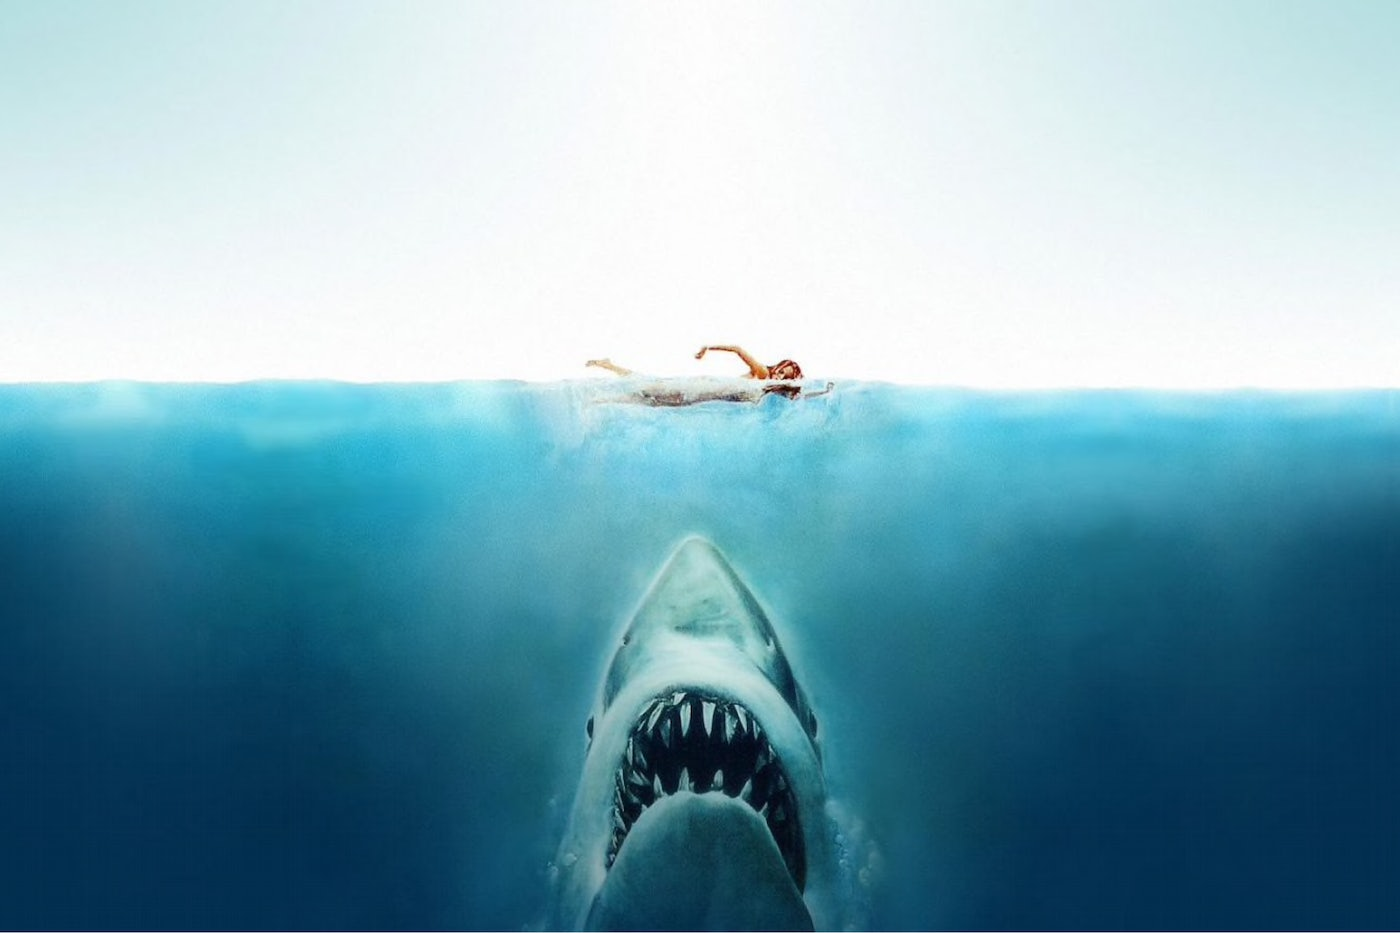 Jaws- Disappointing continuation